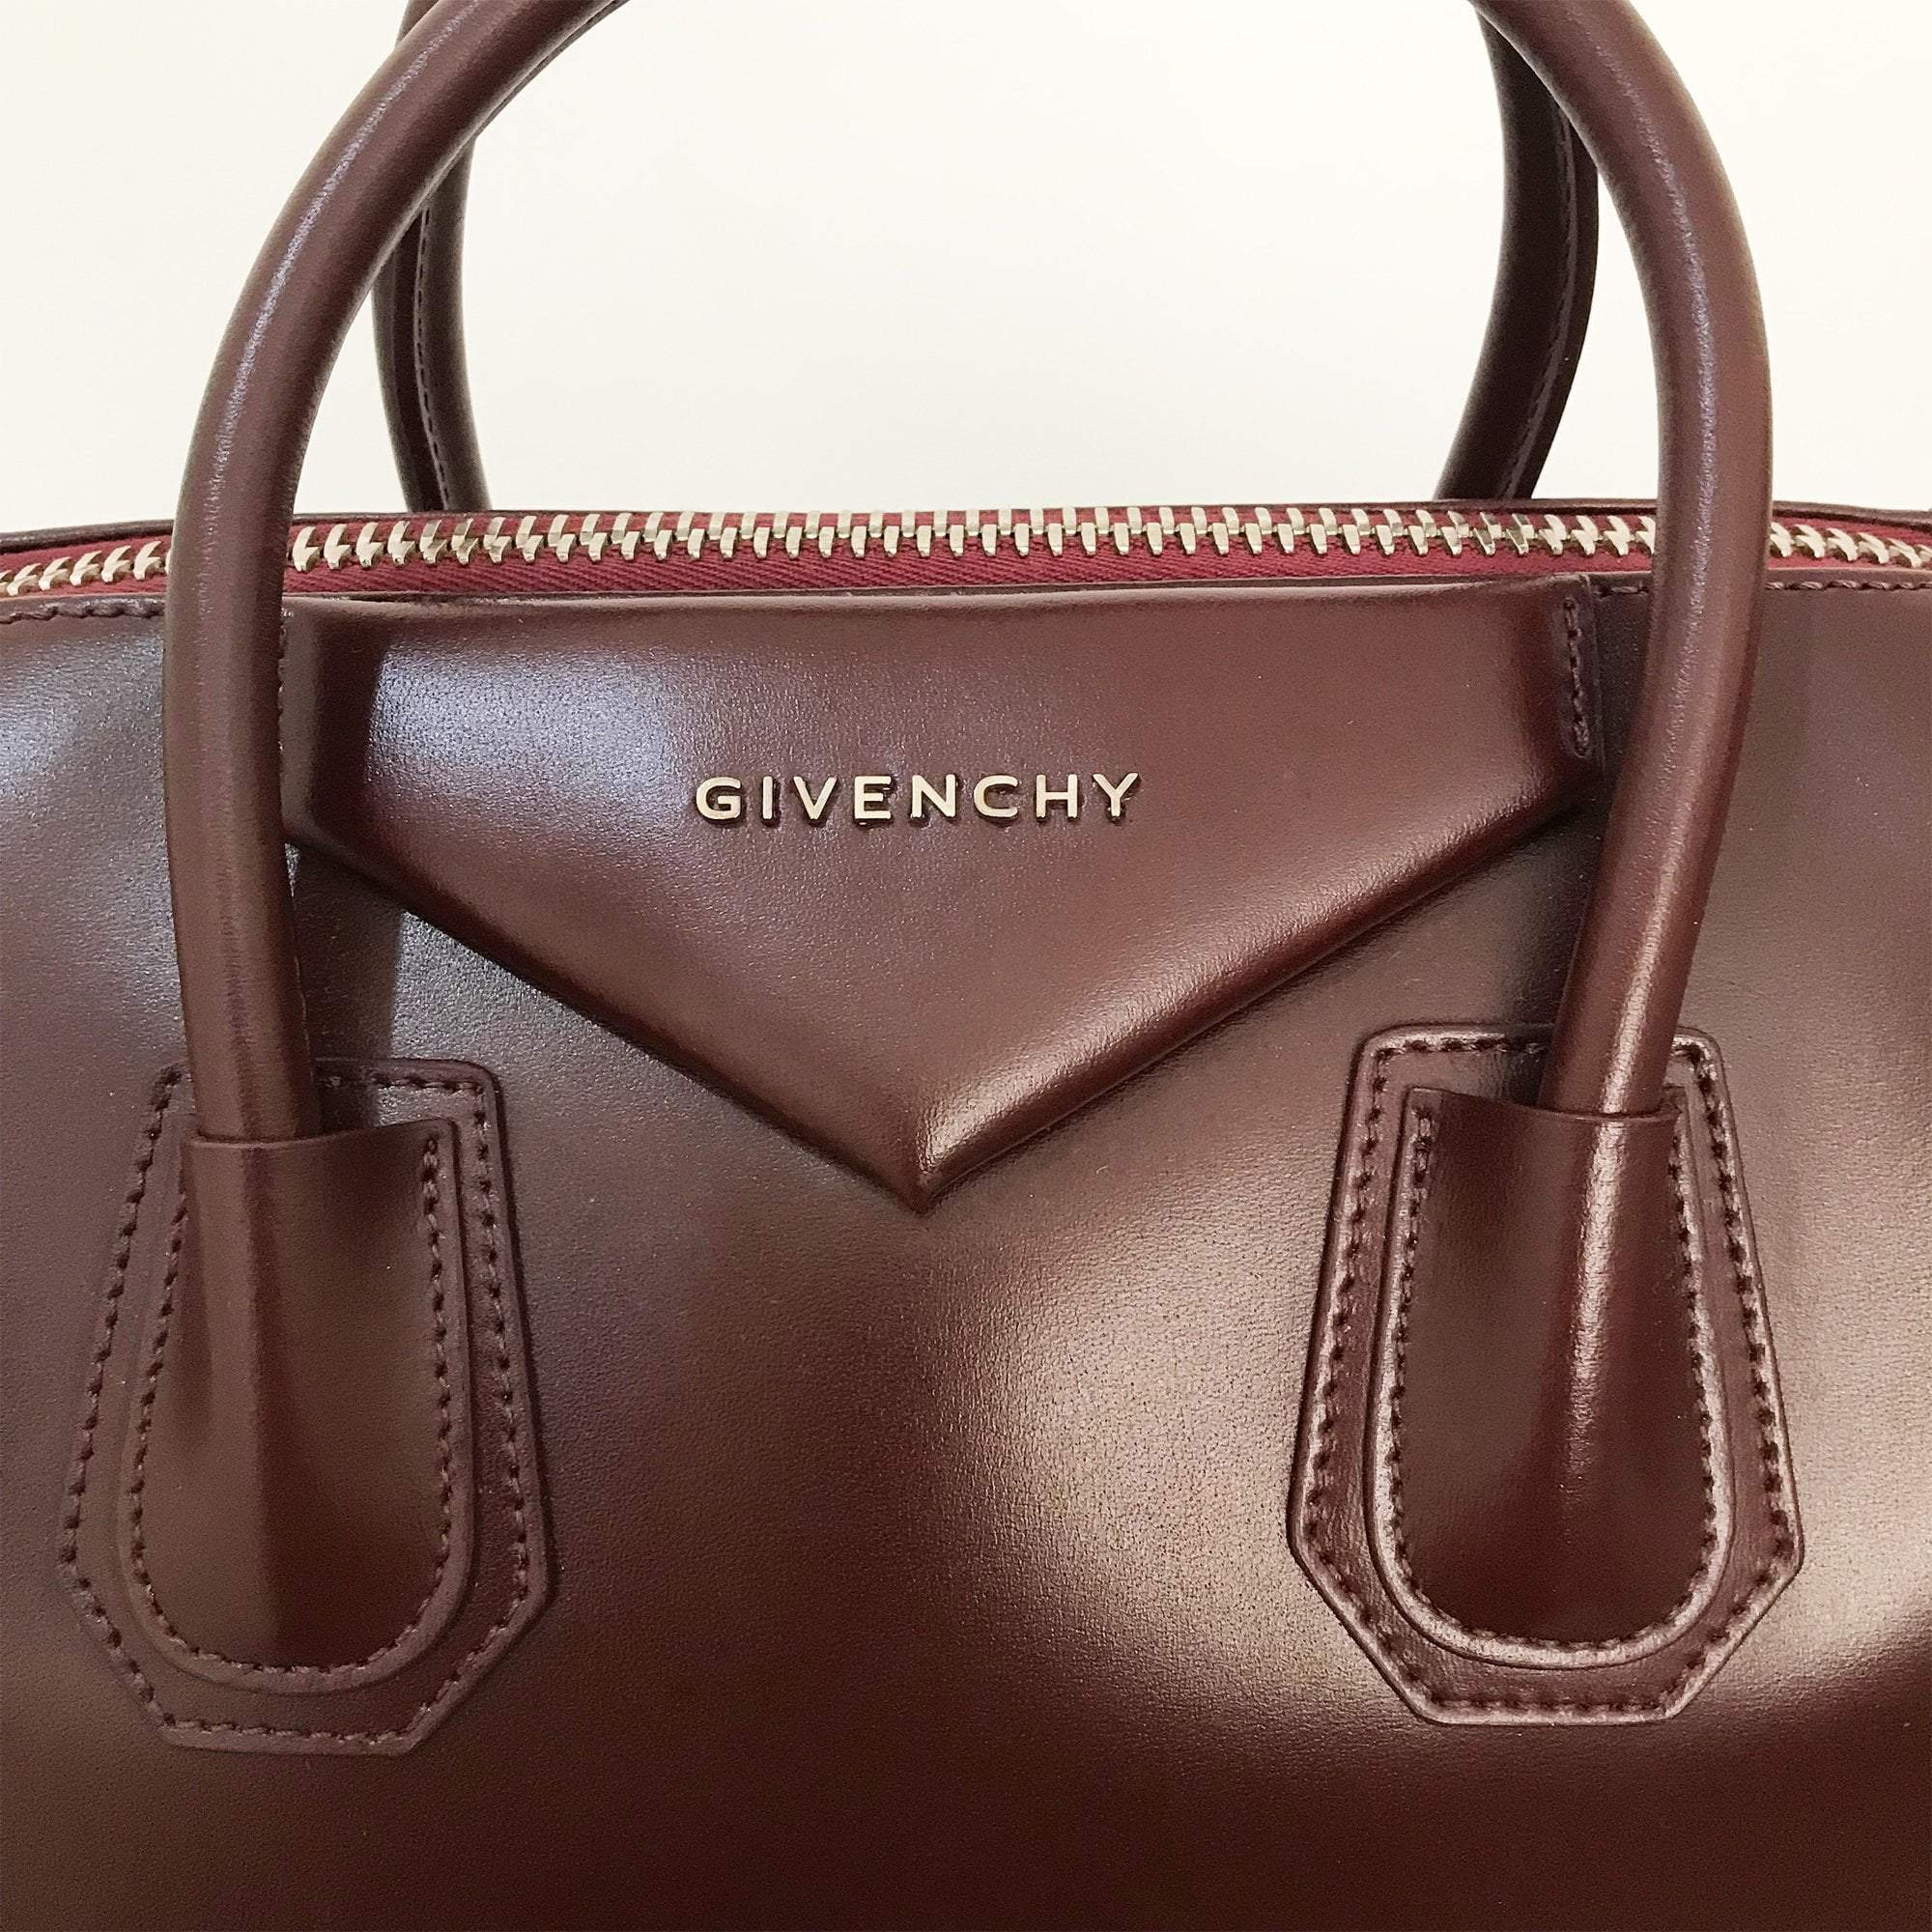 Givenchy Bordeaux Leather Medium Antigona Satchel